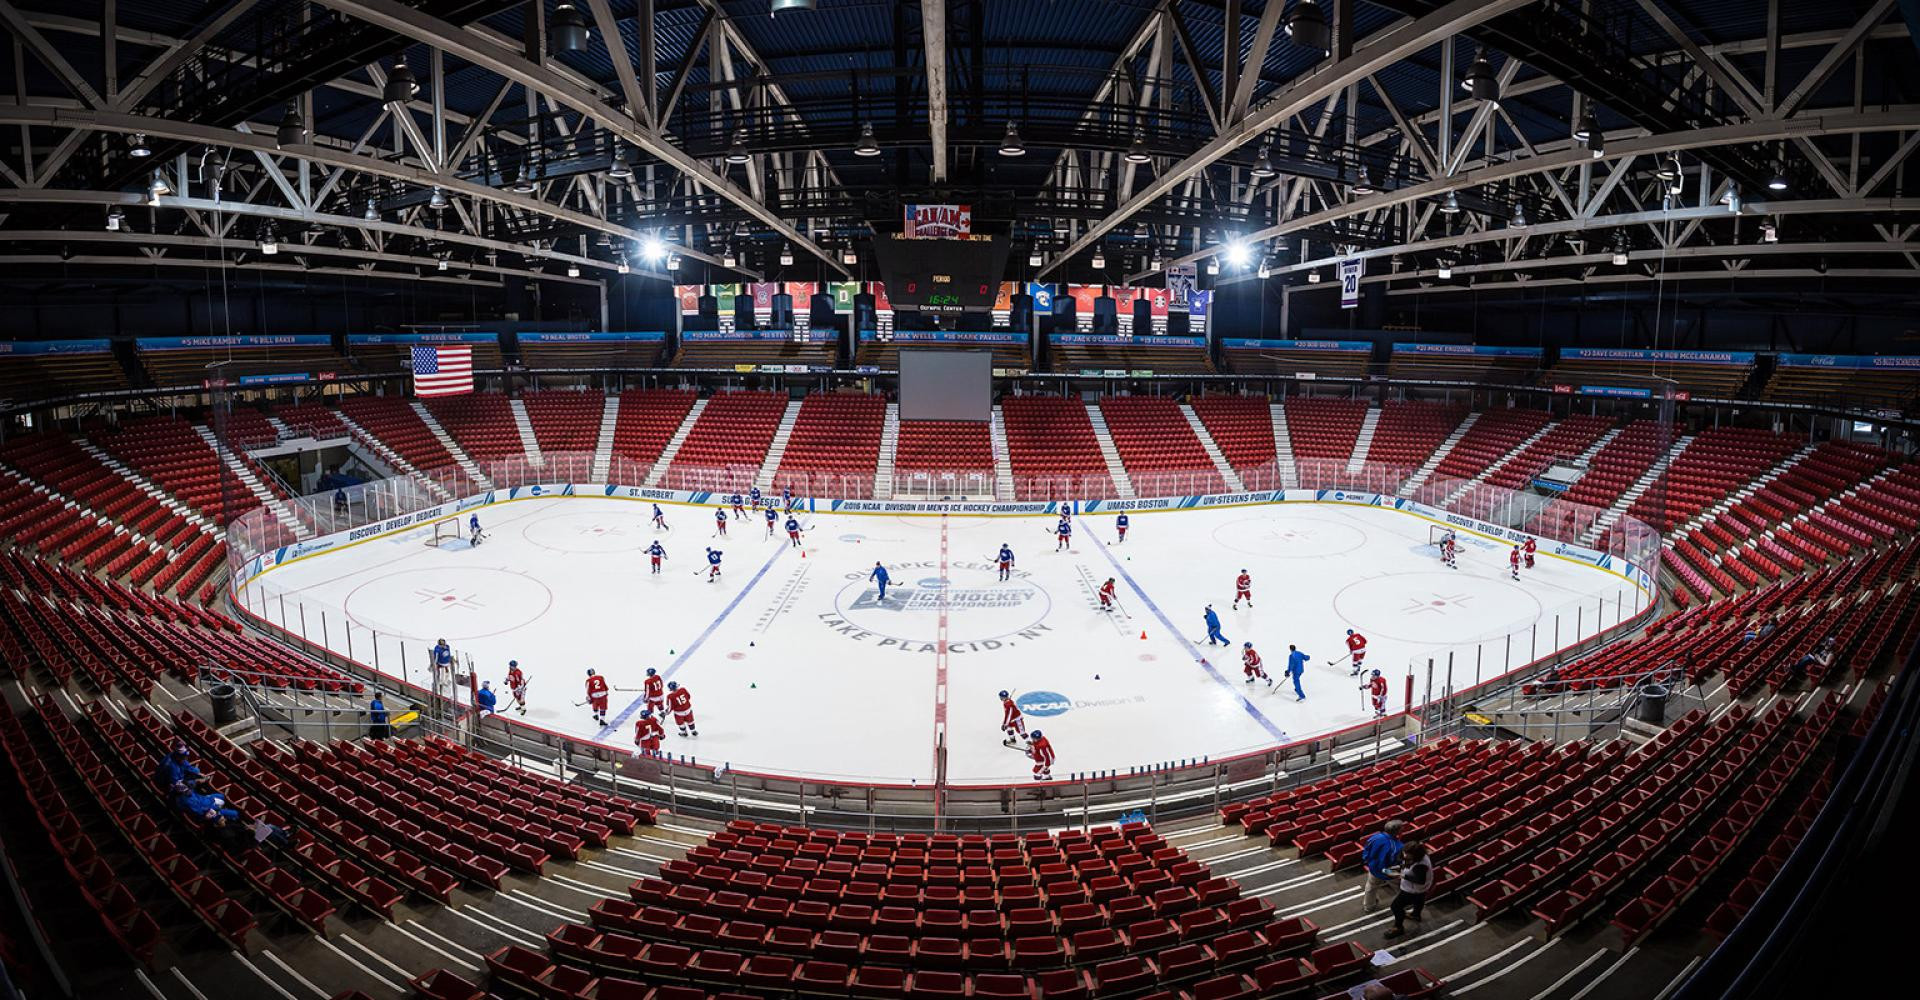 The NWHL season will take place at the Rink-Herb Brooks Arena in Lake Placid ©Lake Placid